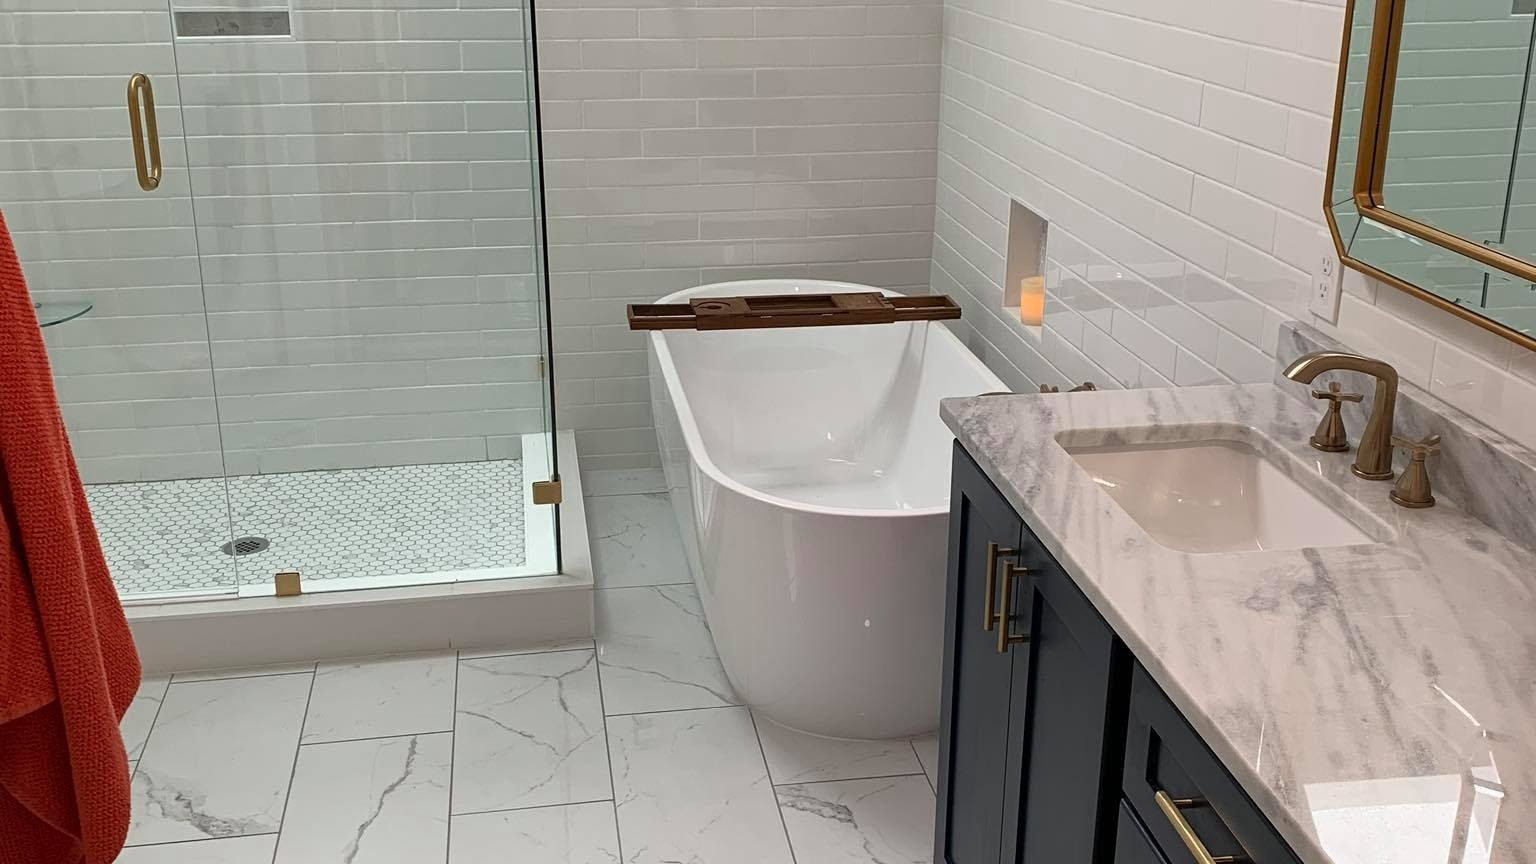 bathroom renovations with tub and glass shower and brown vanity cabinets with mirror